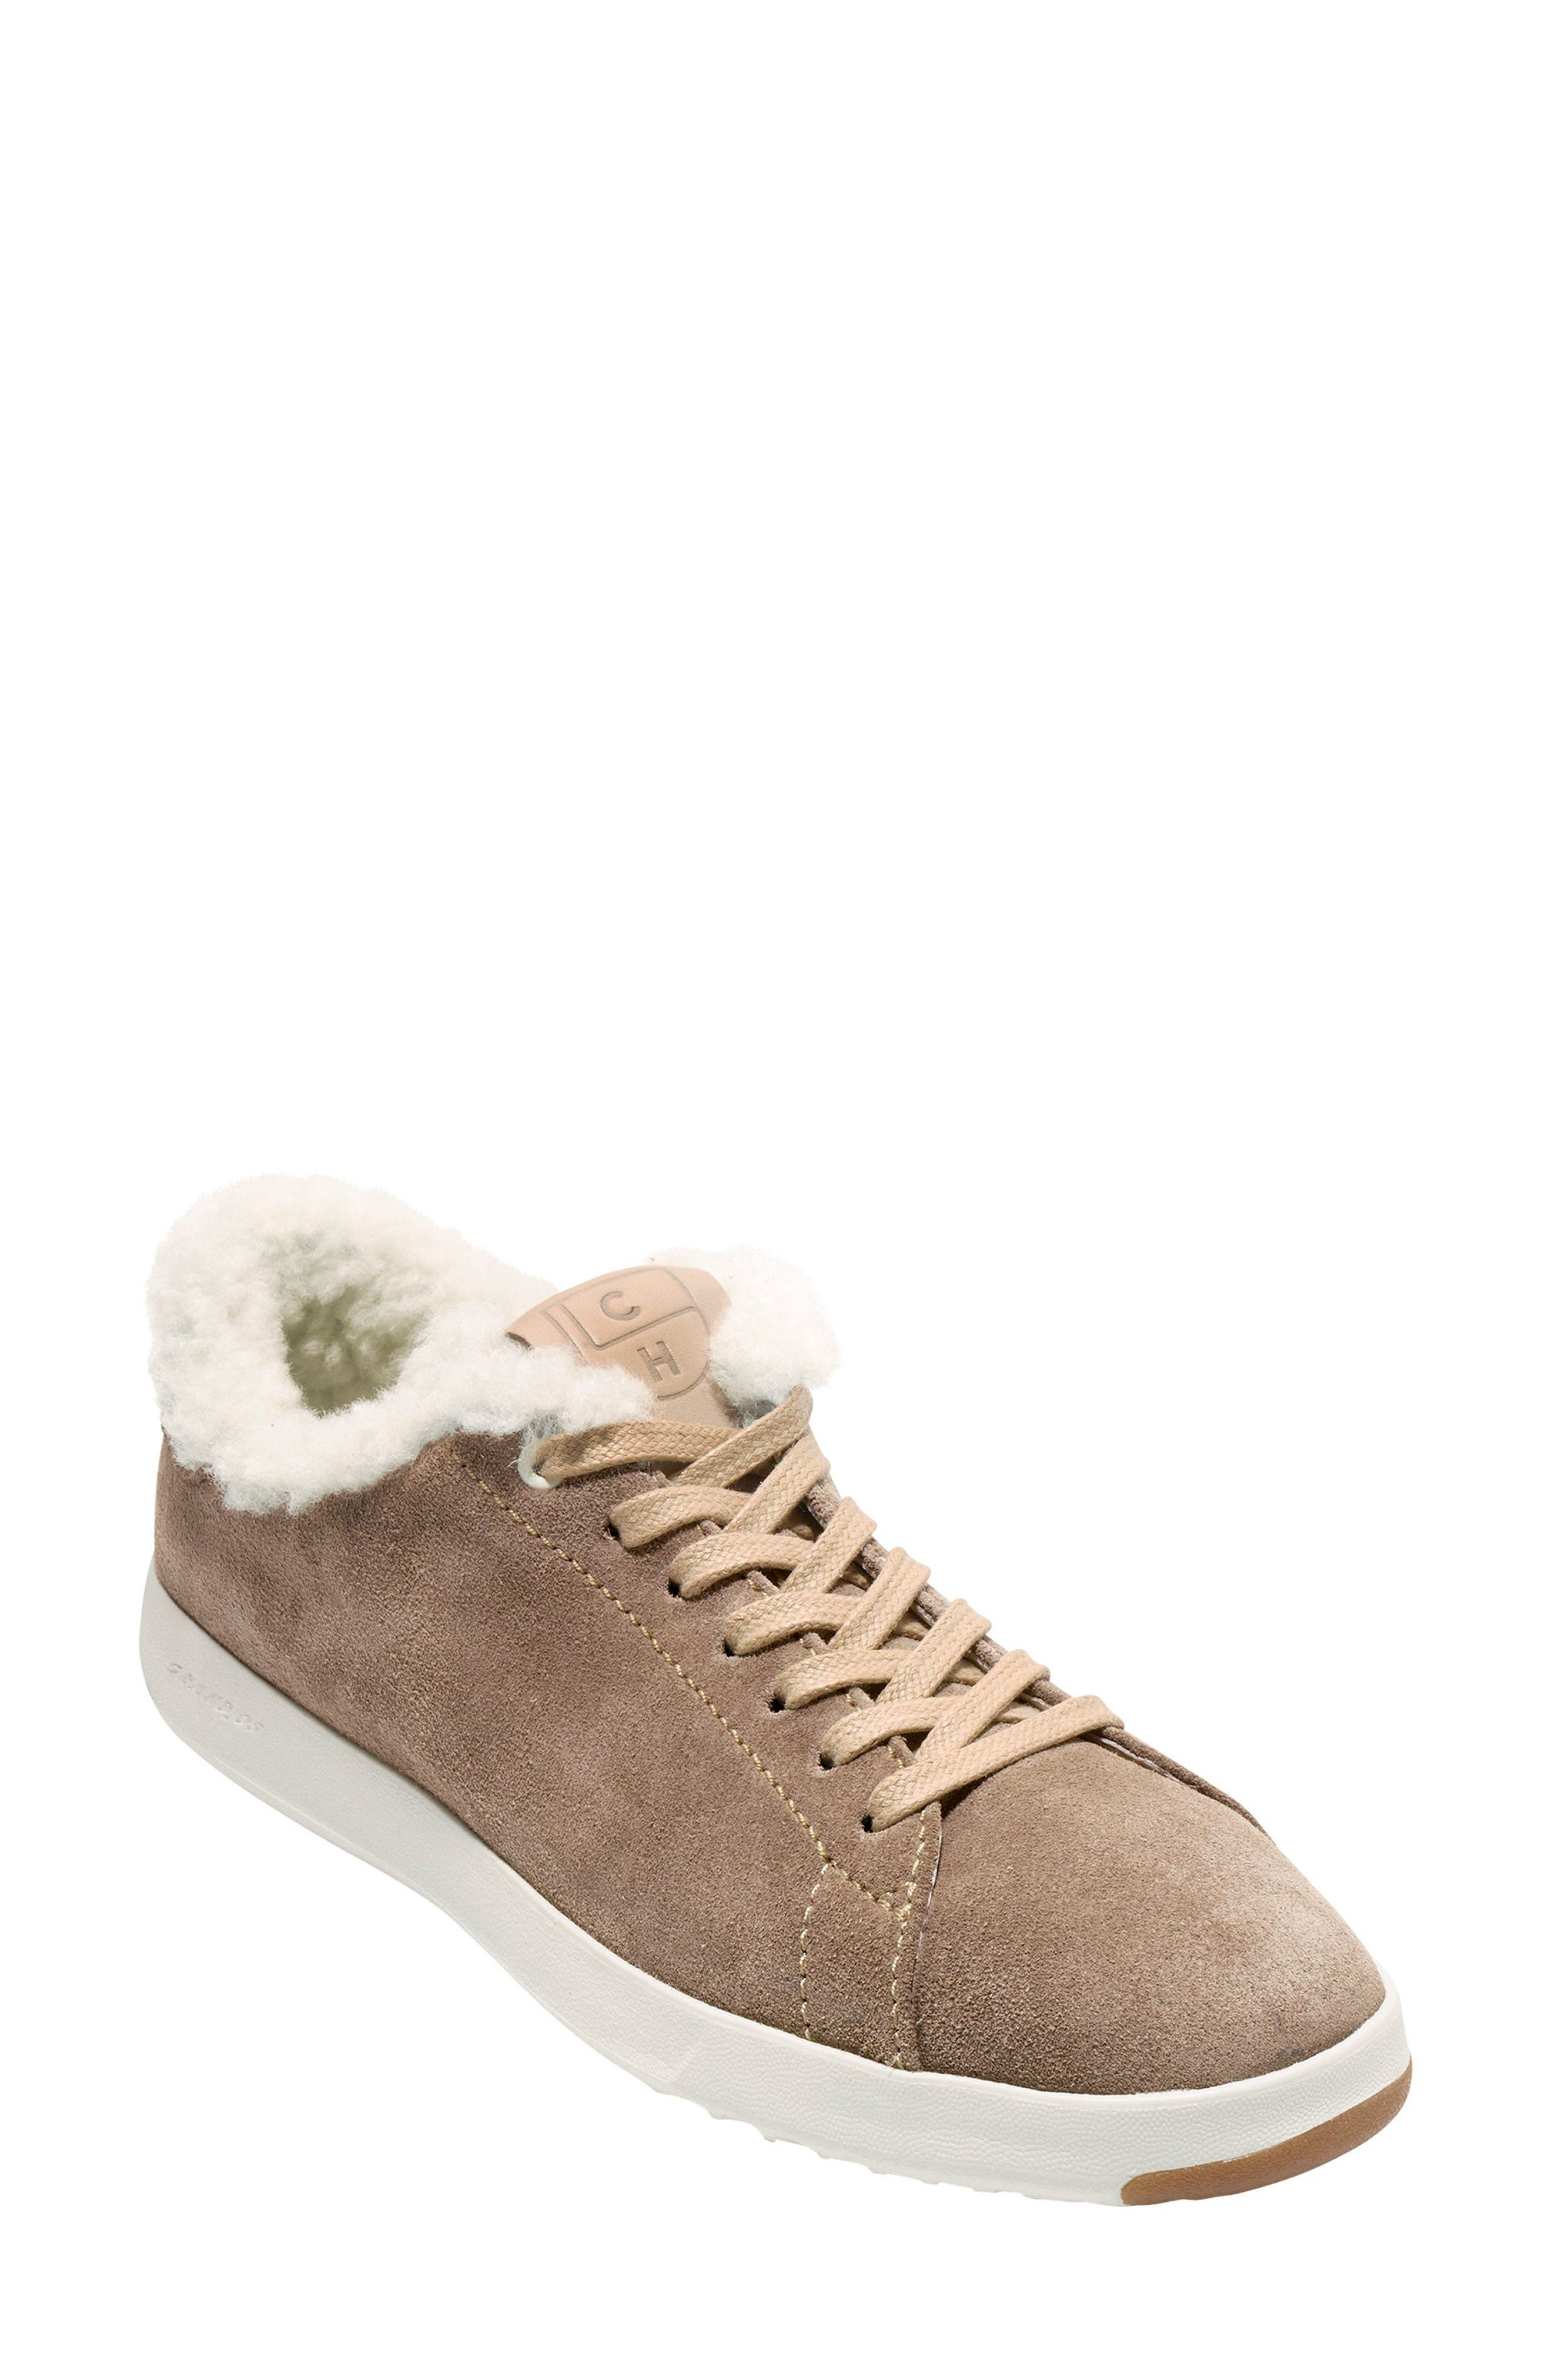 GrandPro Tennis Shoe,                         Main,                         color, Warm Sand Suede